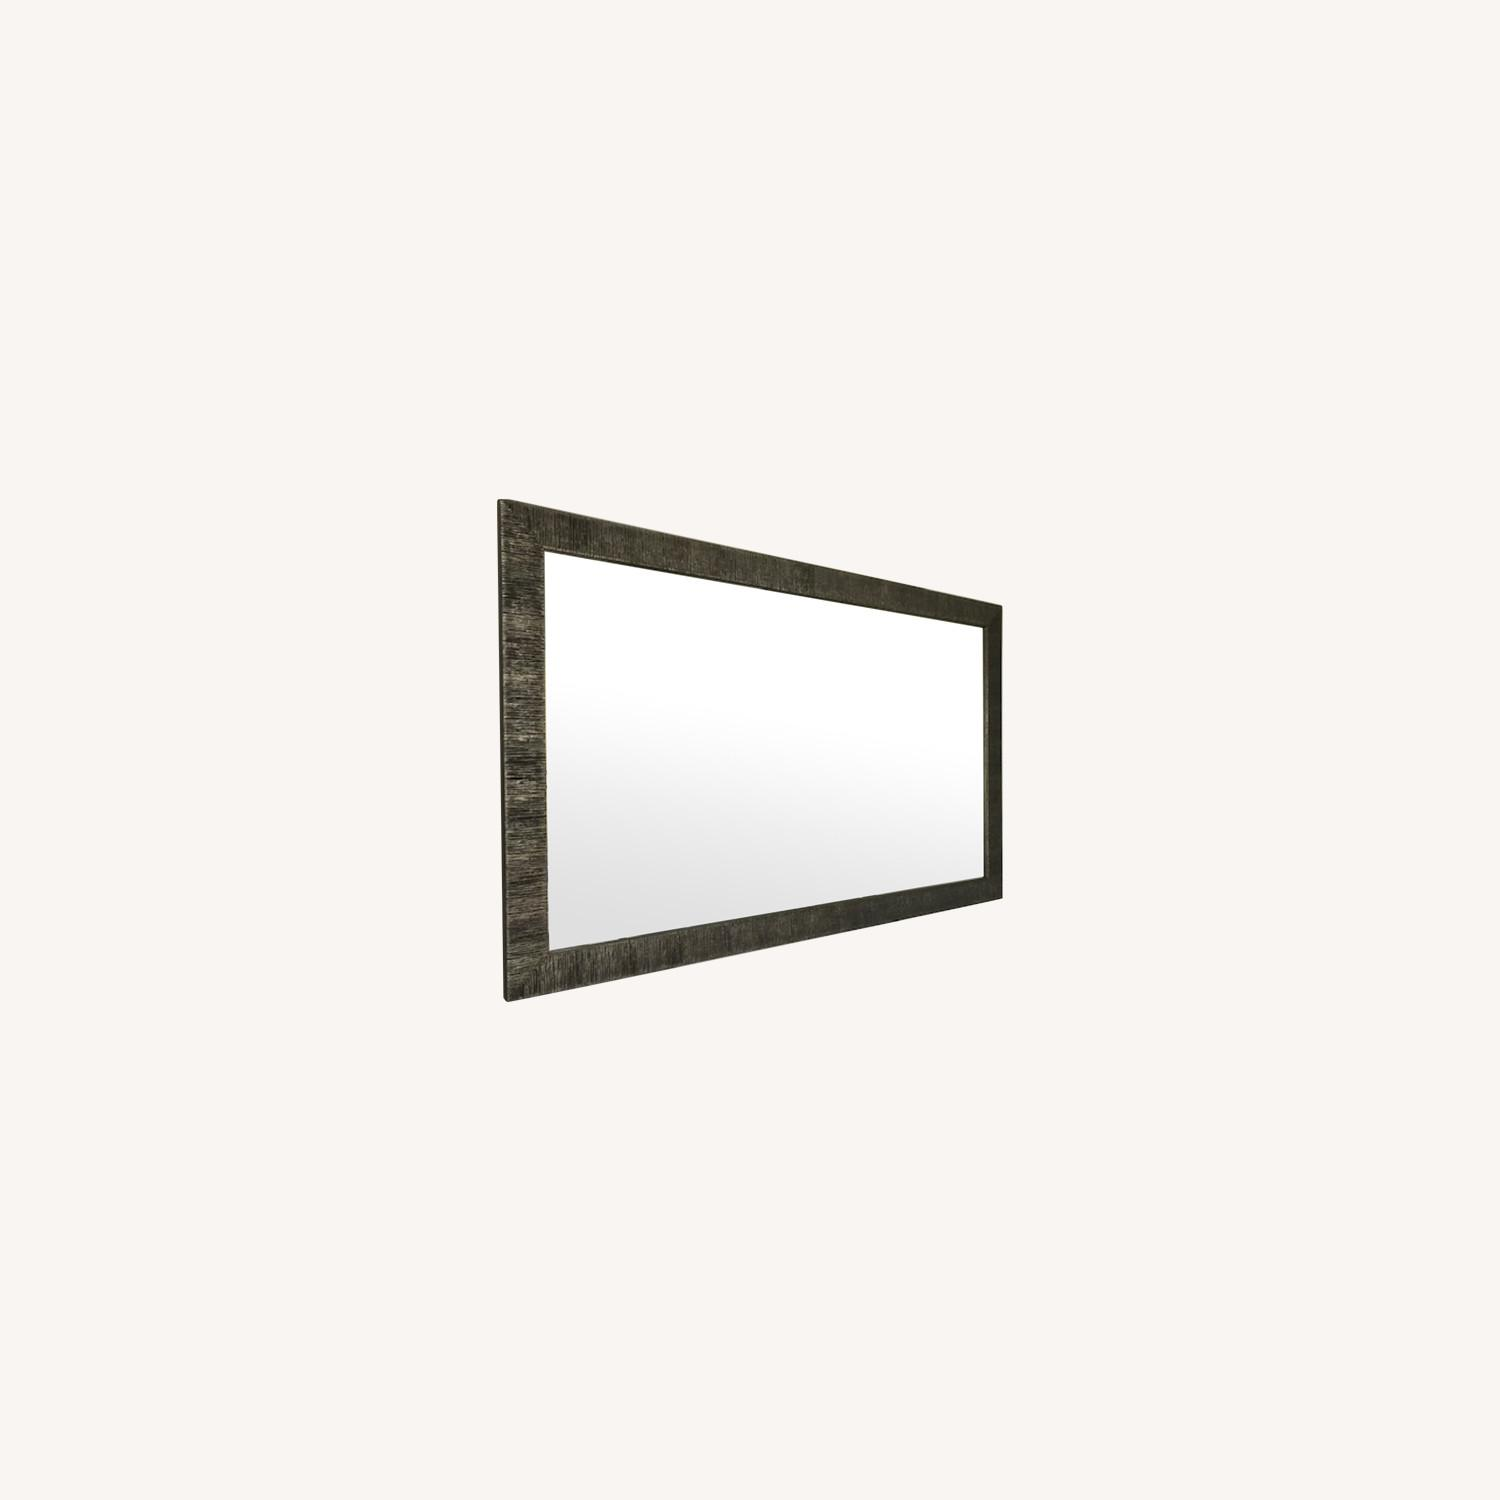 Crate & Barrel Siver Birch Wall Mirror - image-0